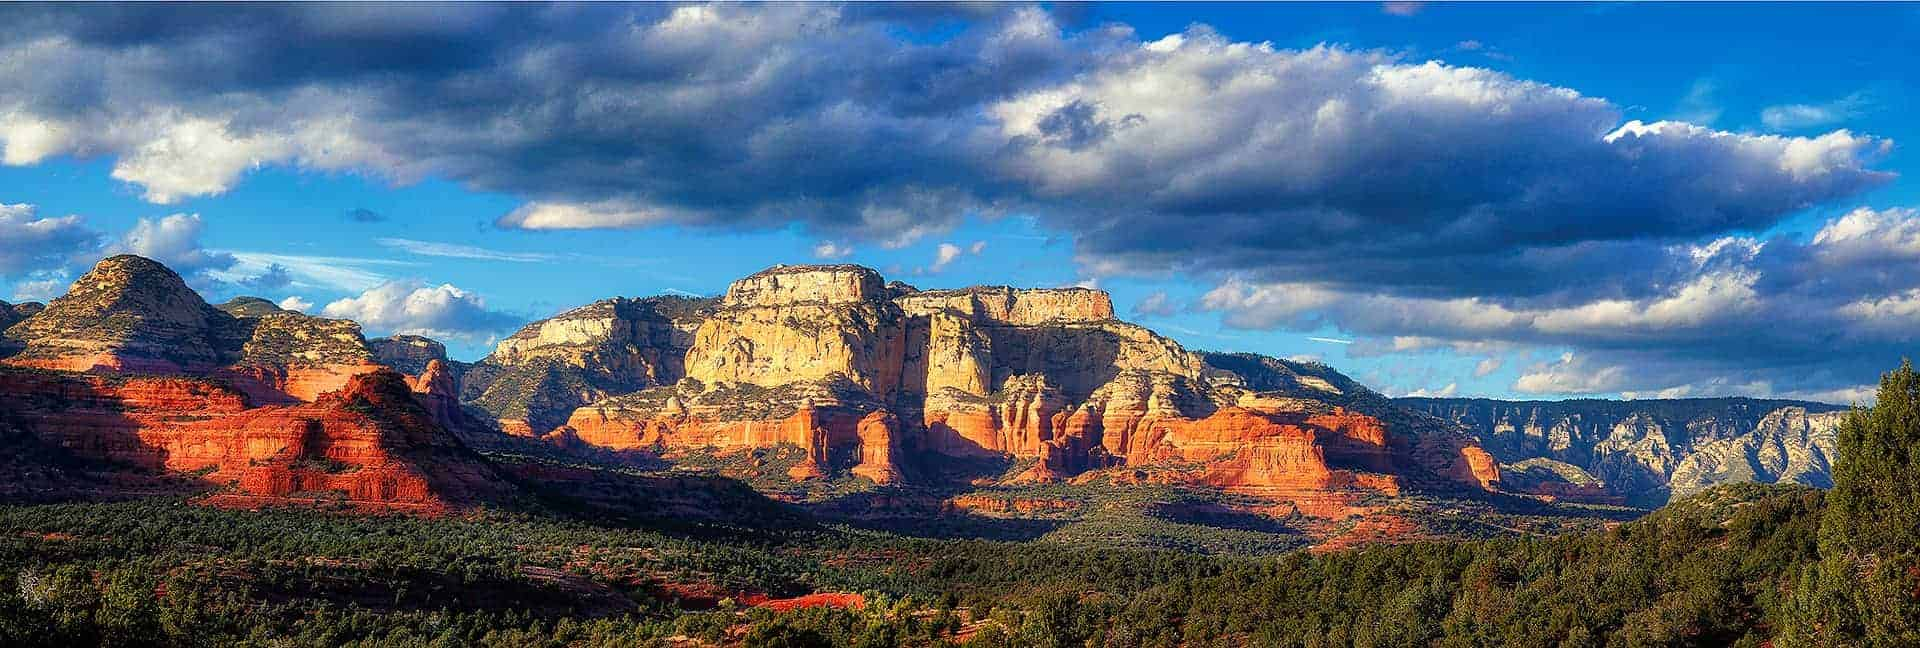 Sedona Vista Panoramic by martinsullivandesign.com